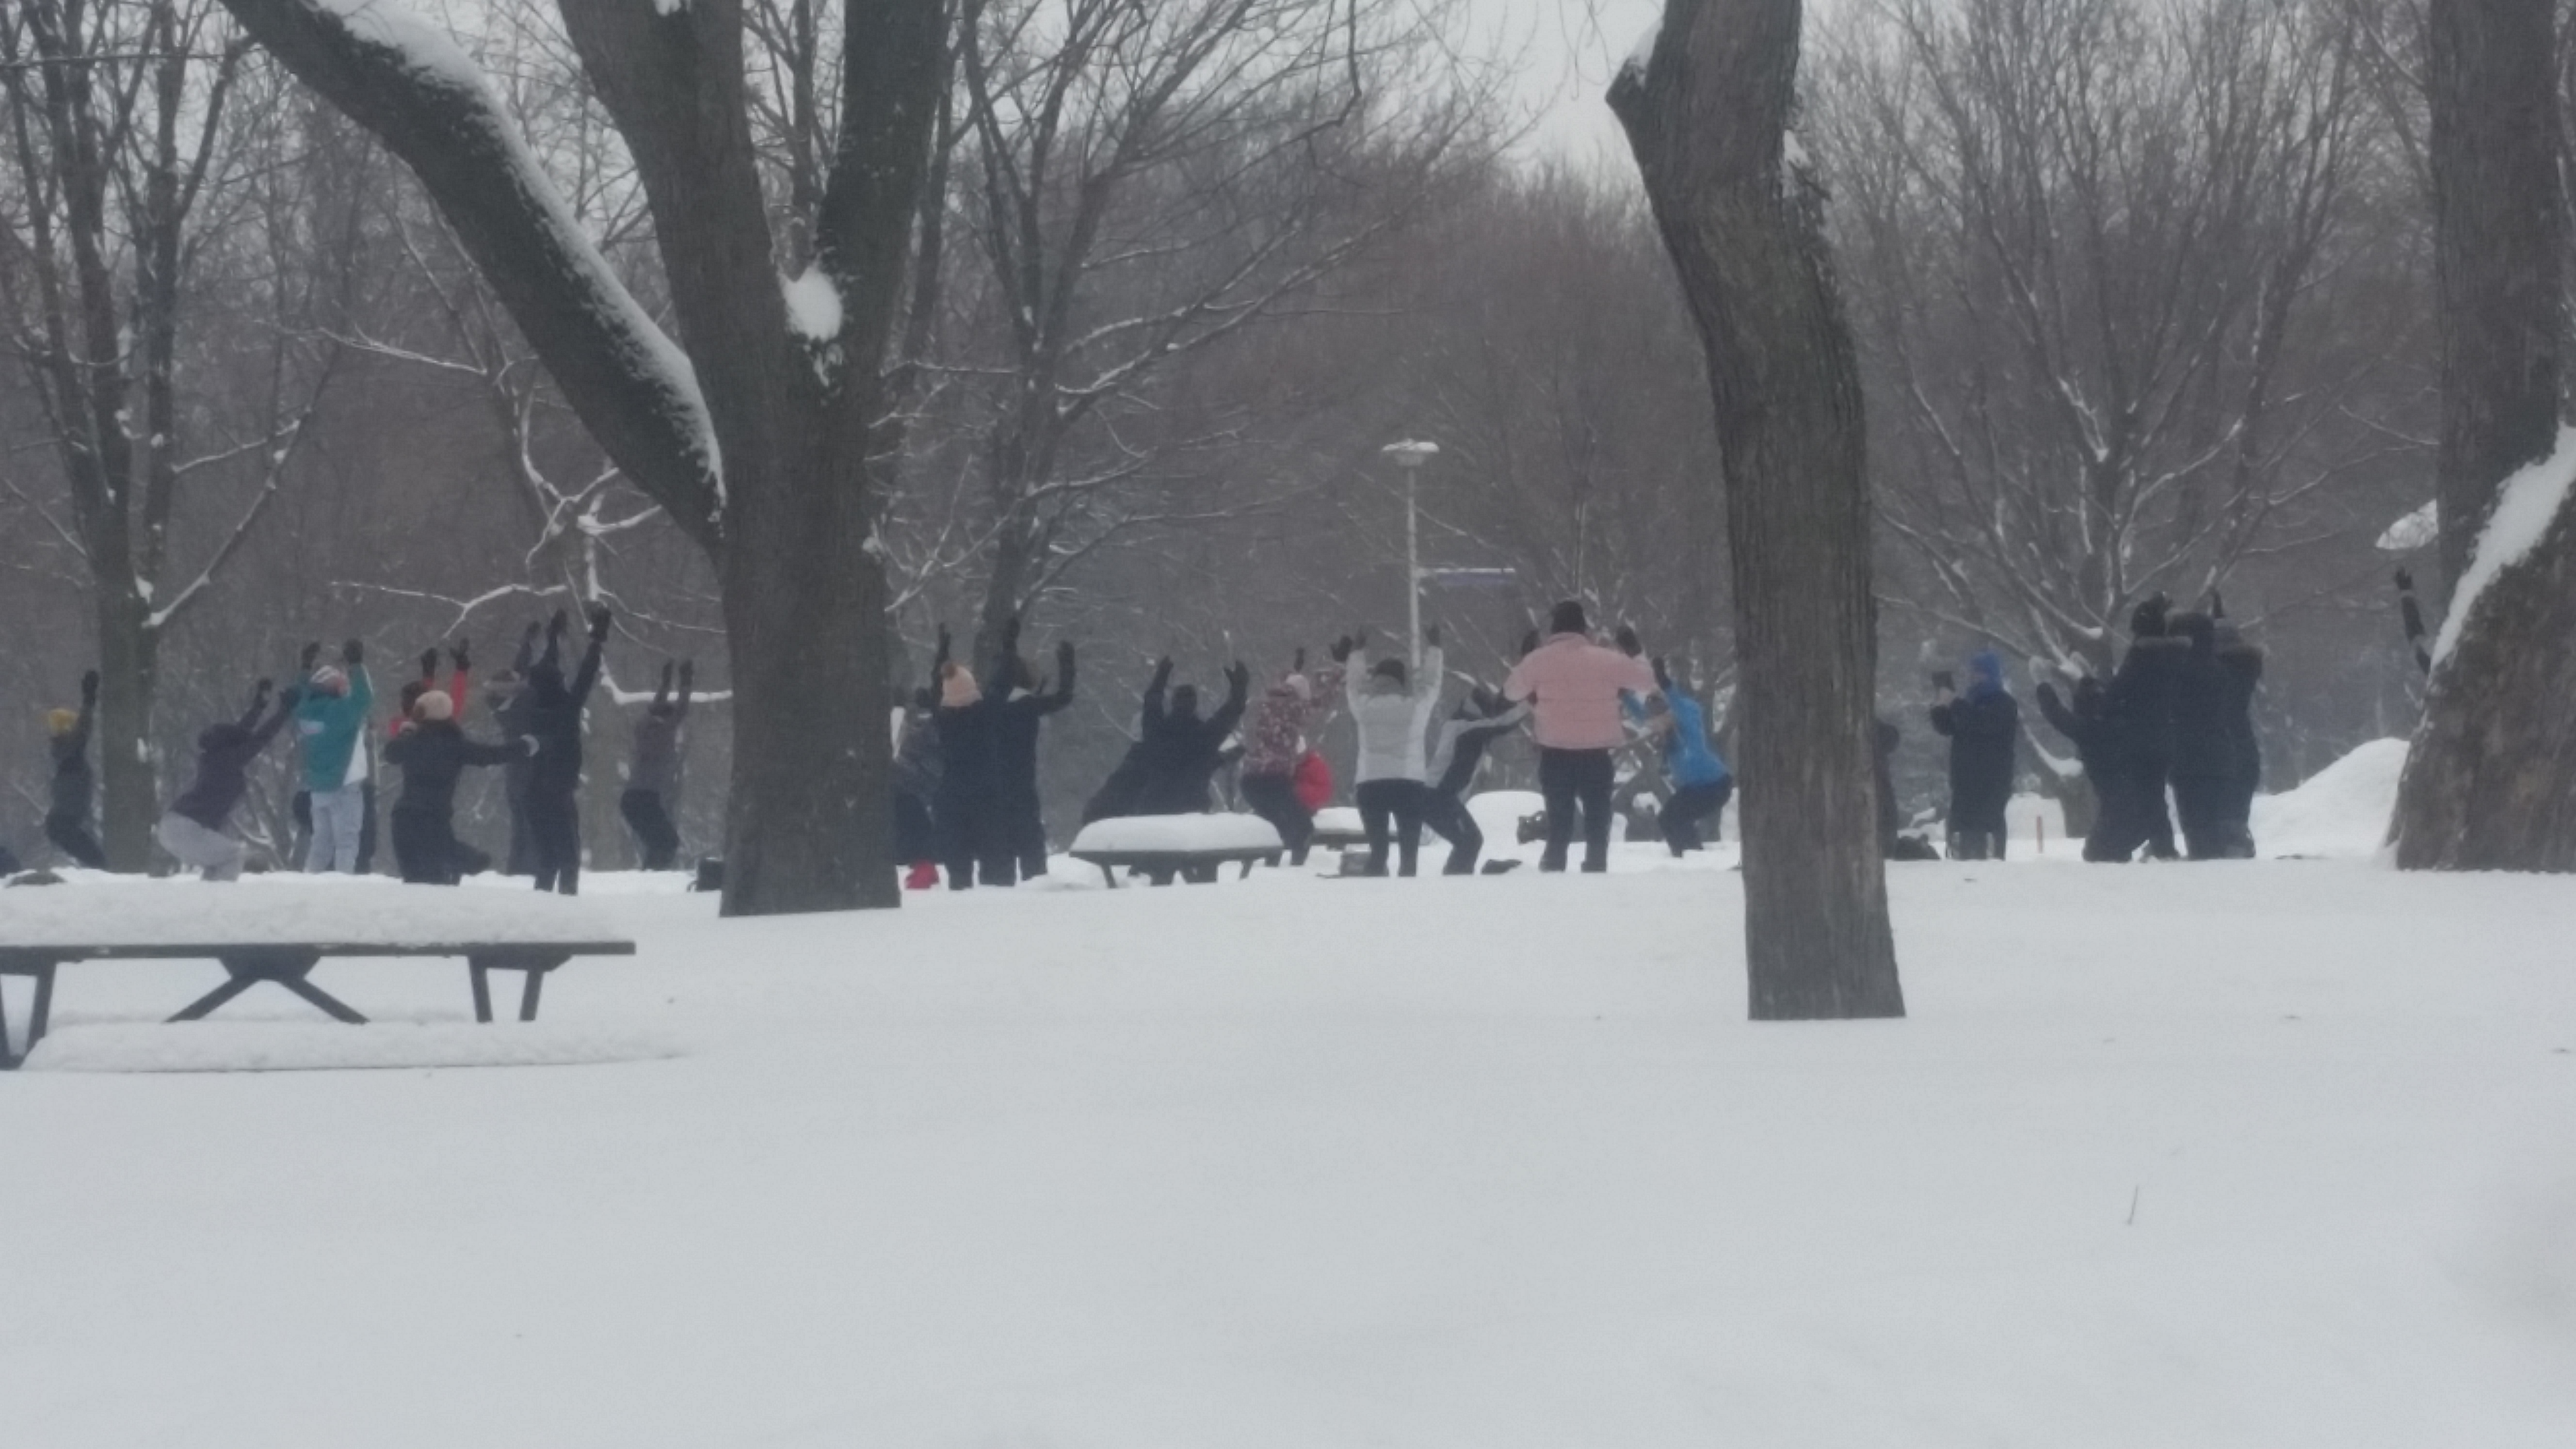 outdoor yoga class in the snow